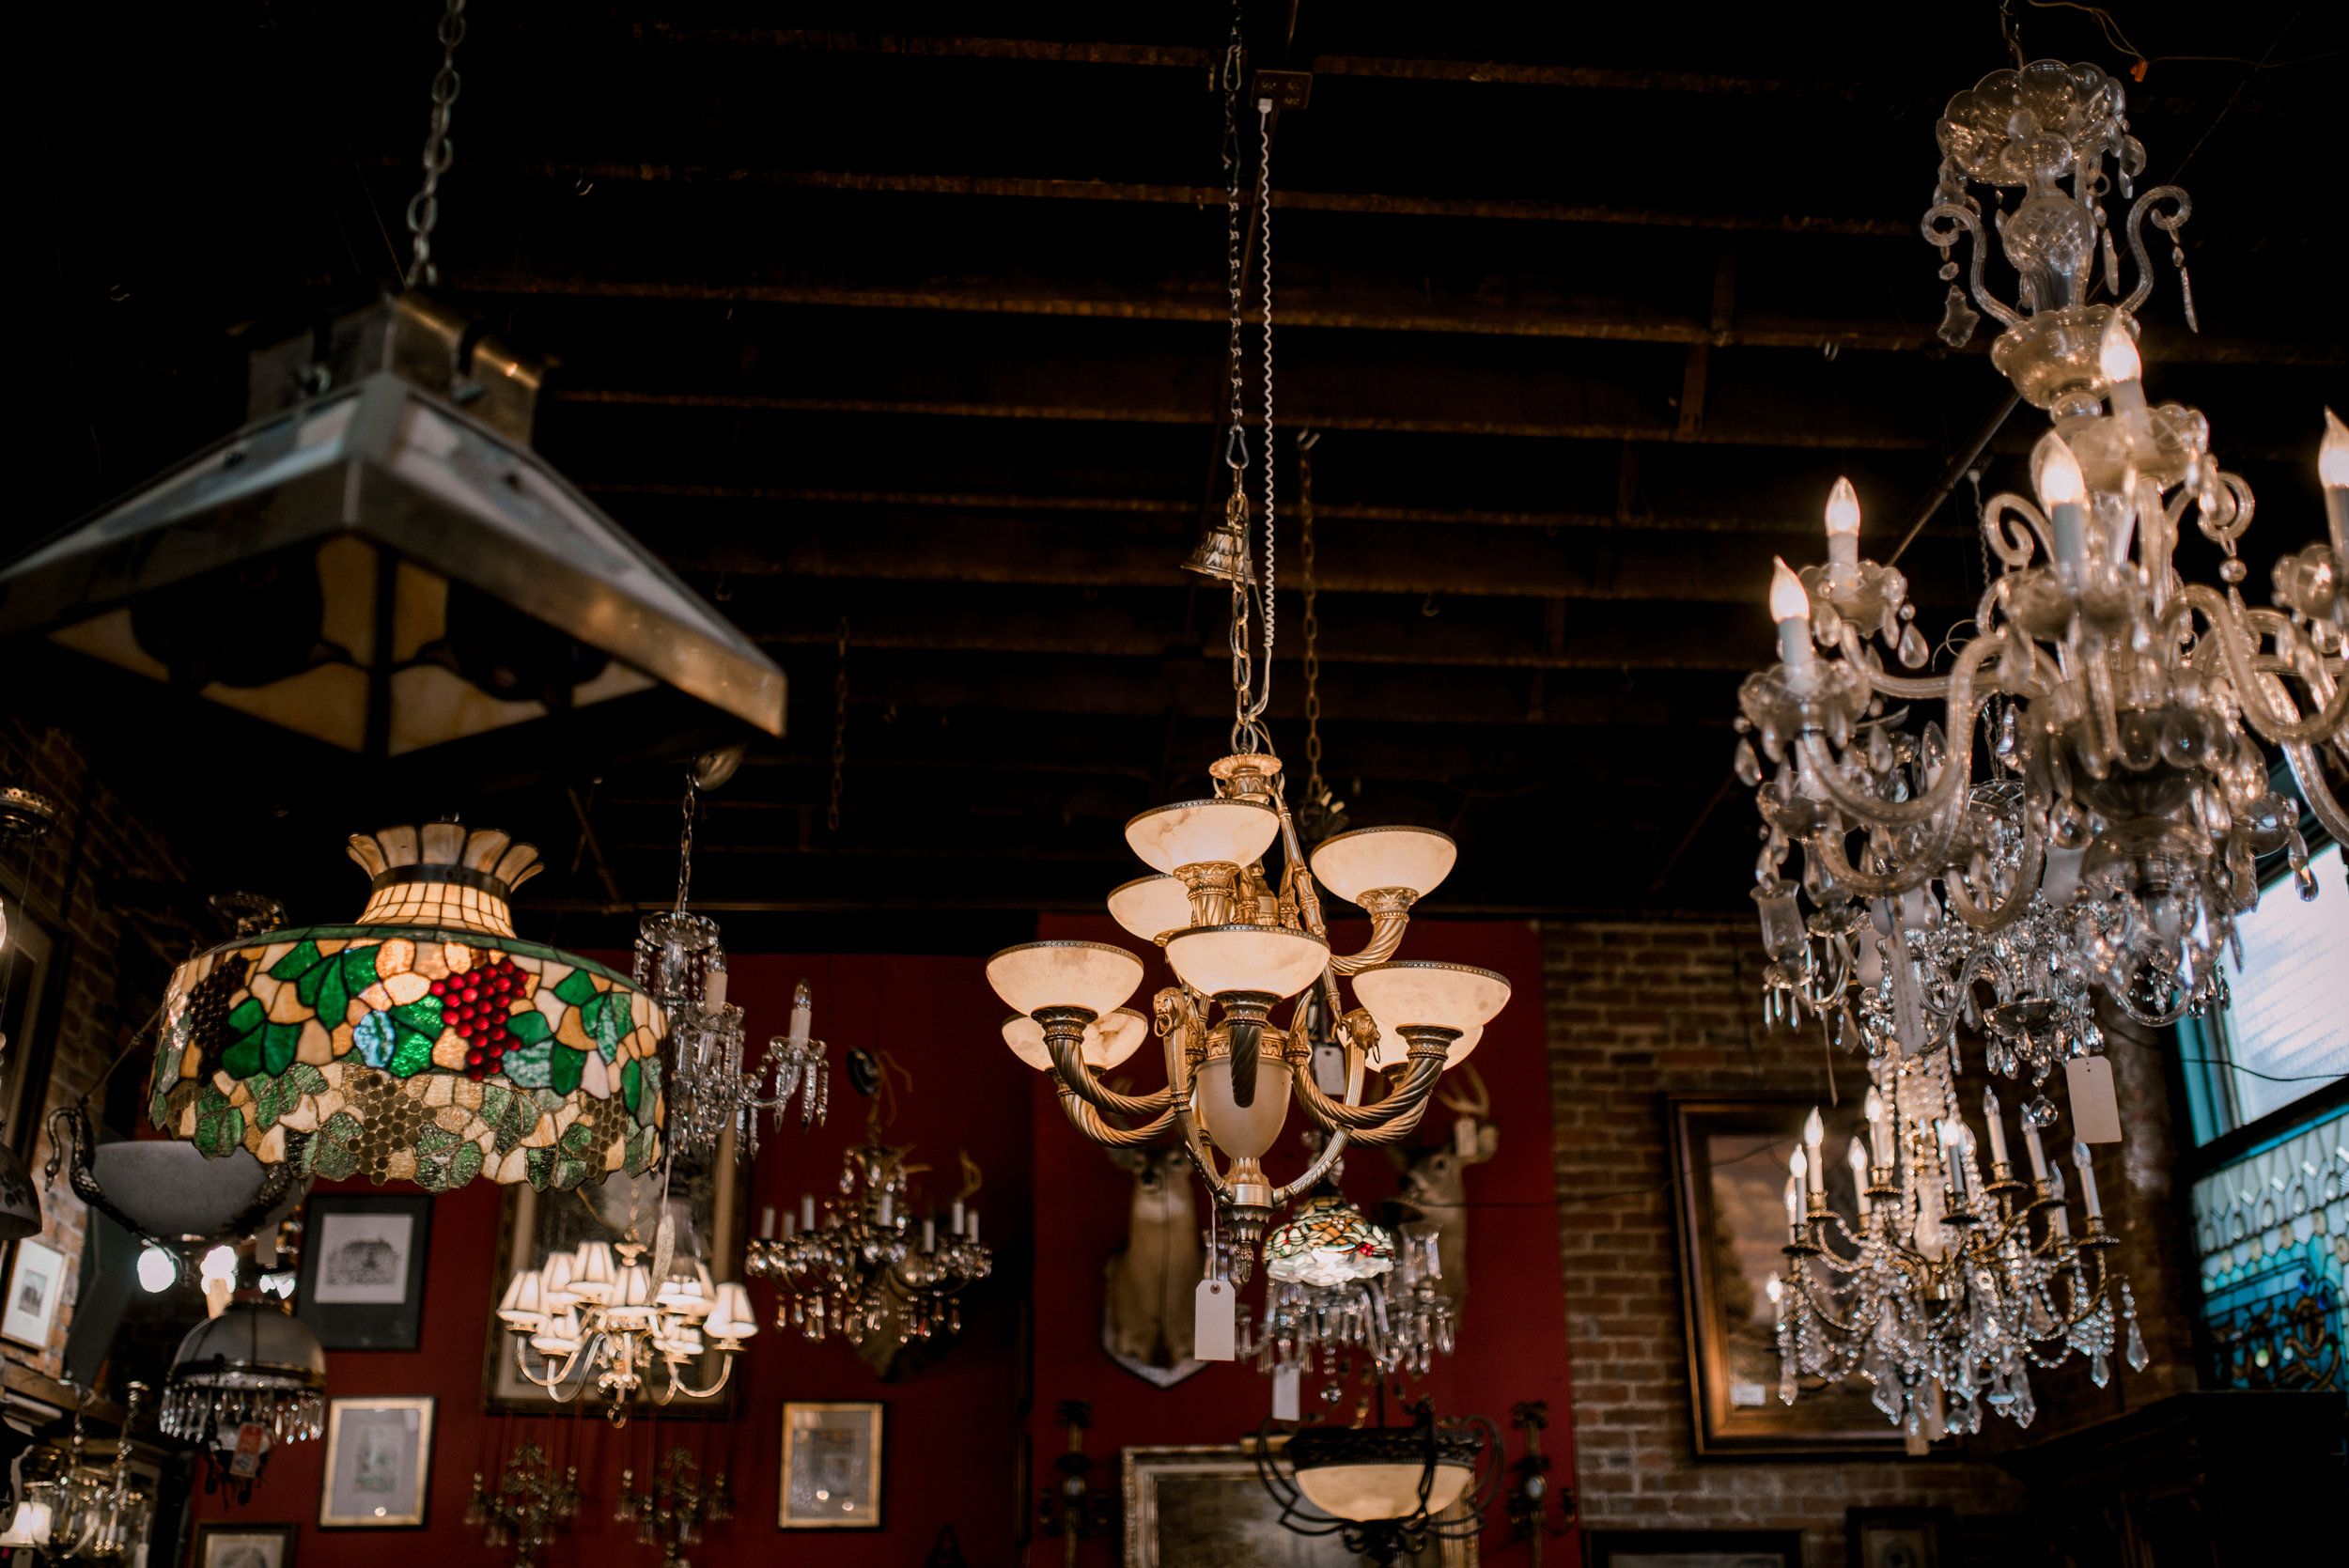 joe-ley's-antique-store-engagement-session-photographer